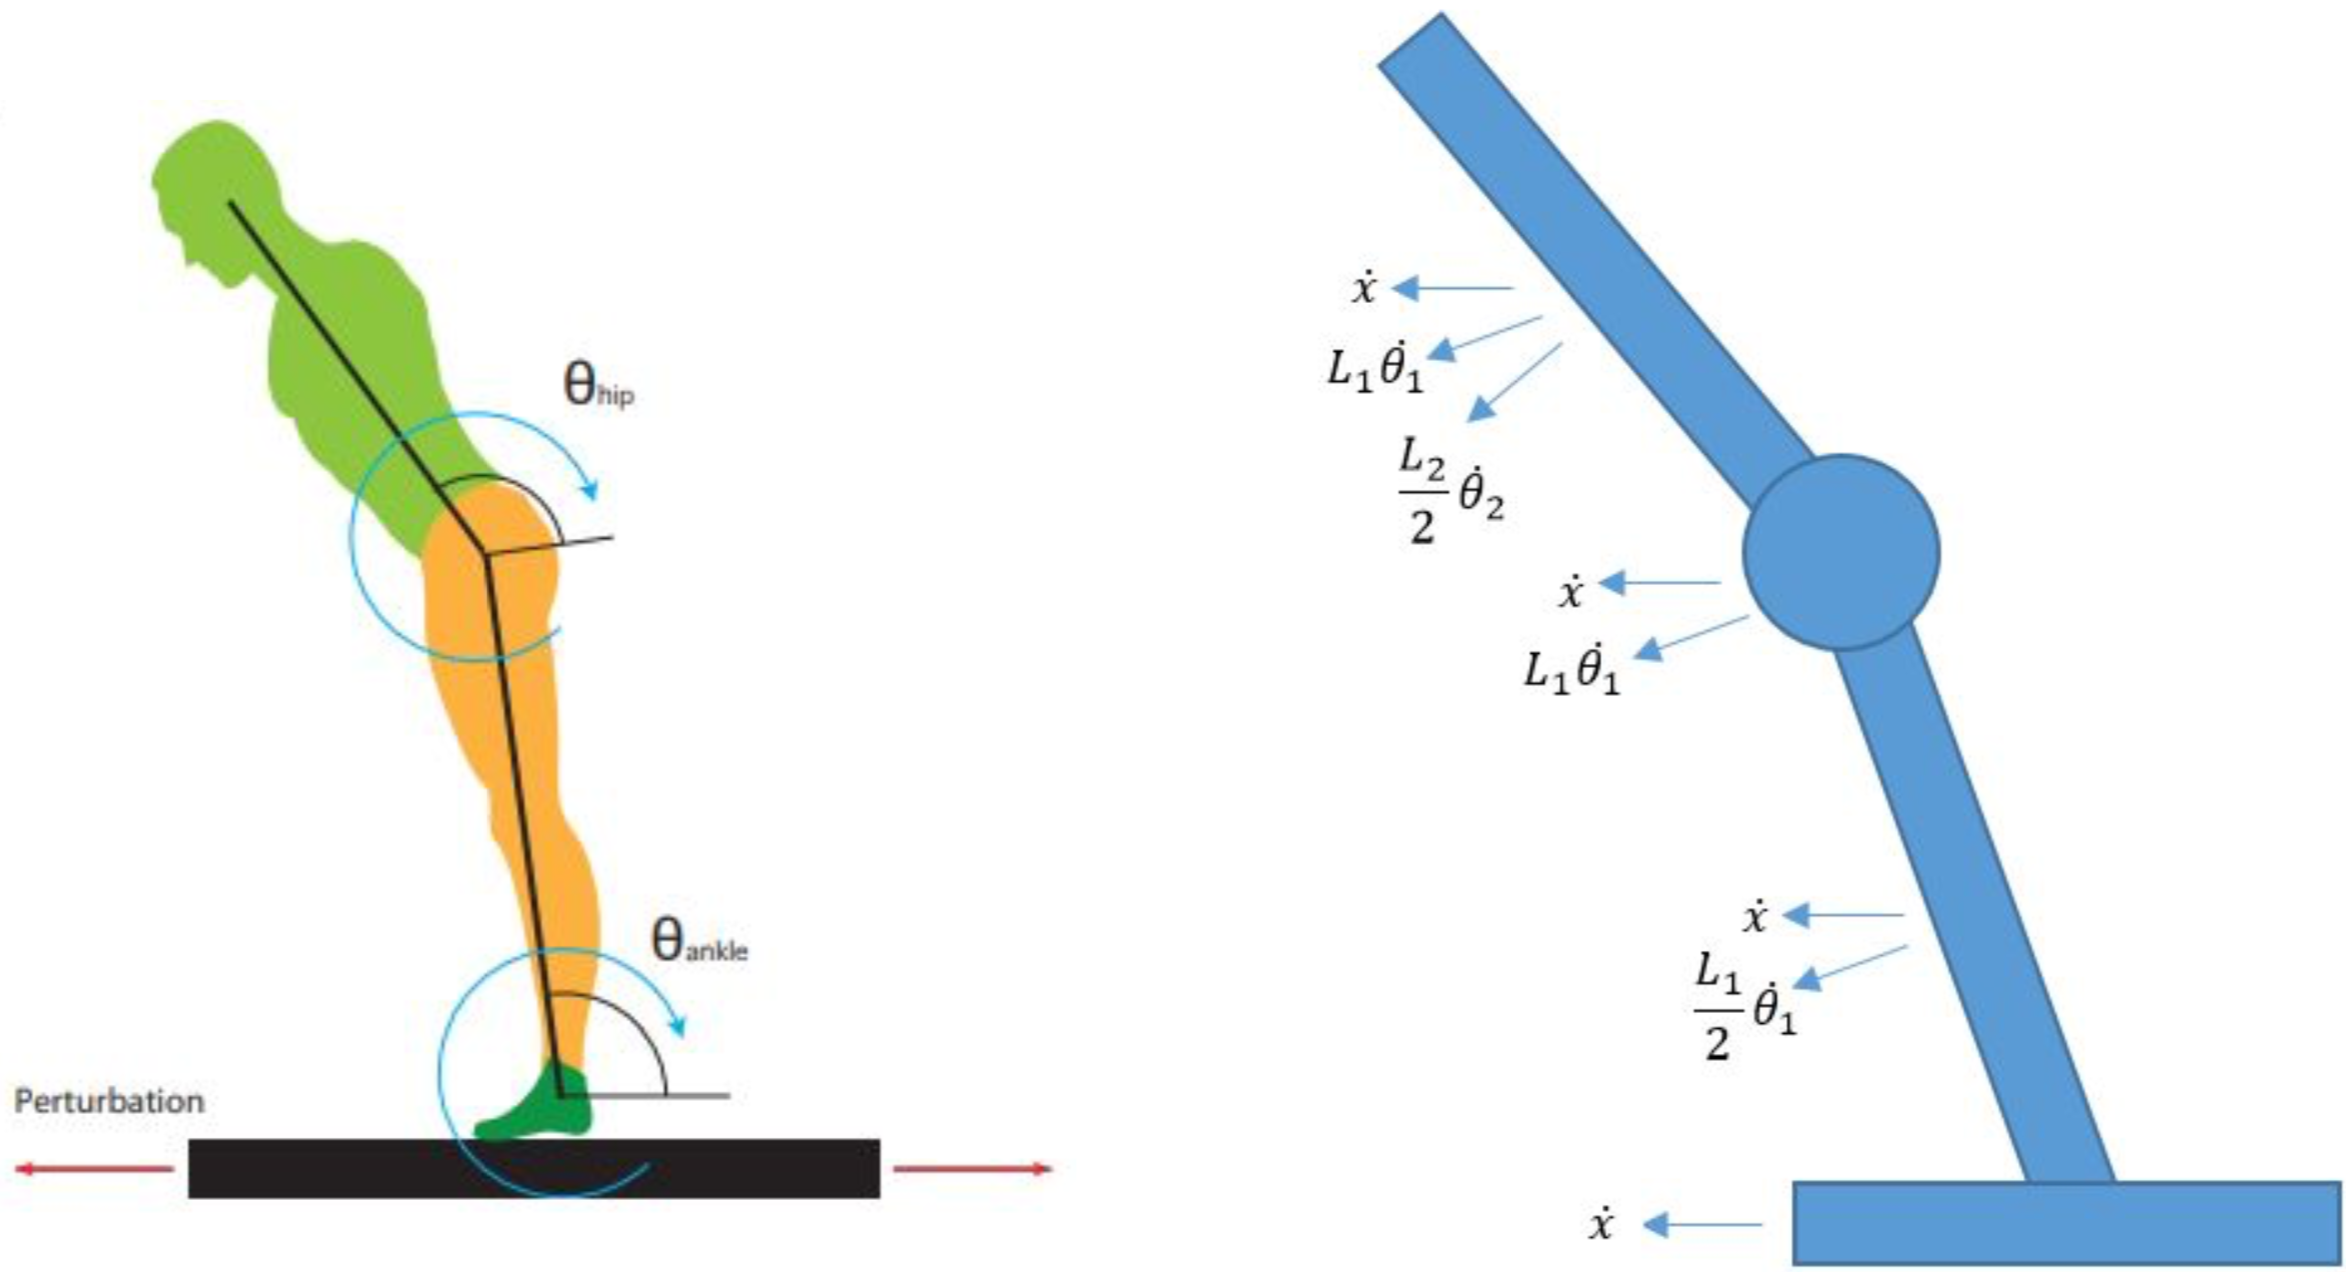 Image depicting visual model showing the dynamics of the double pendulum robot